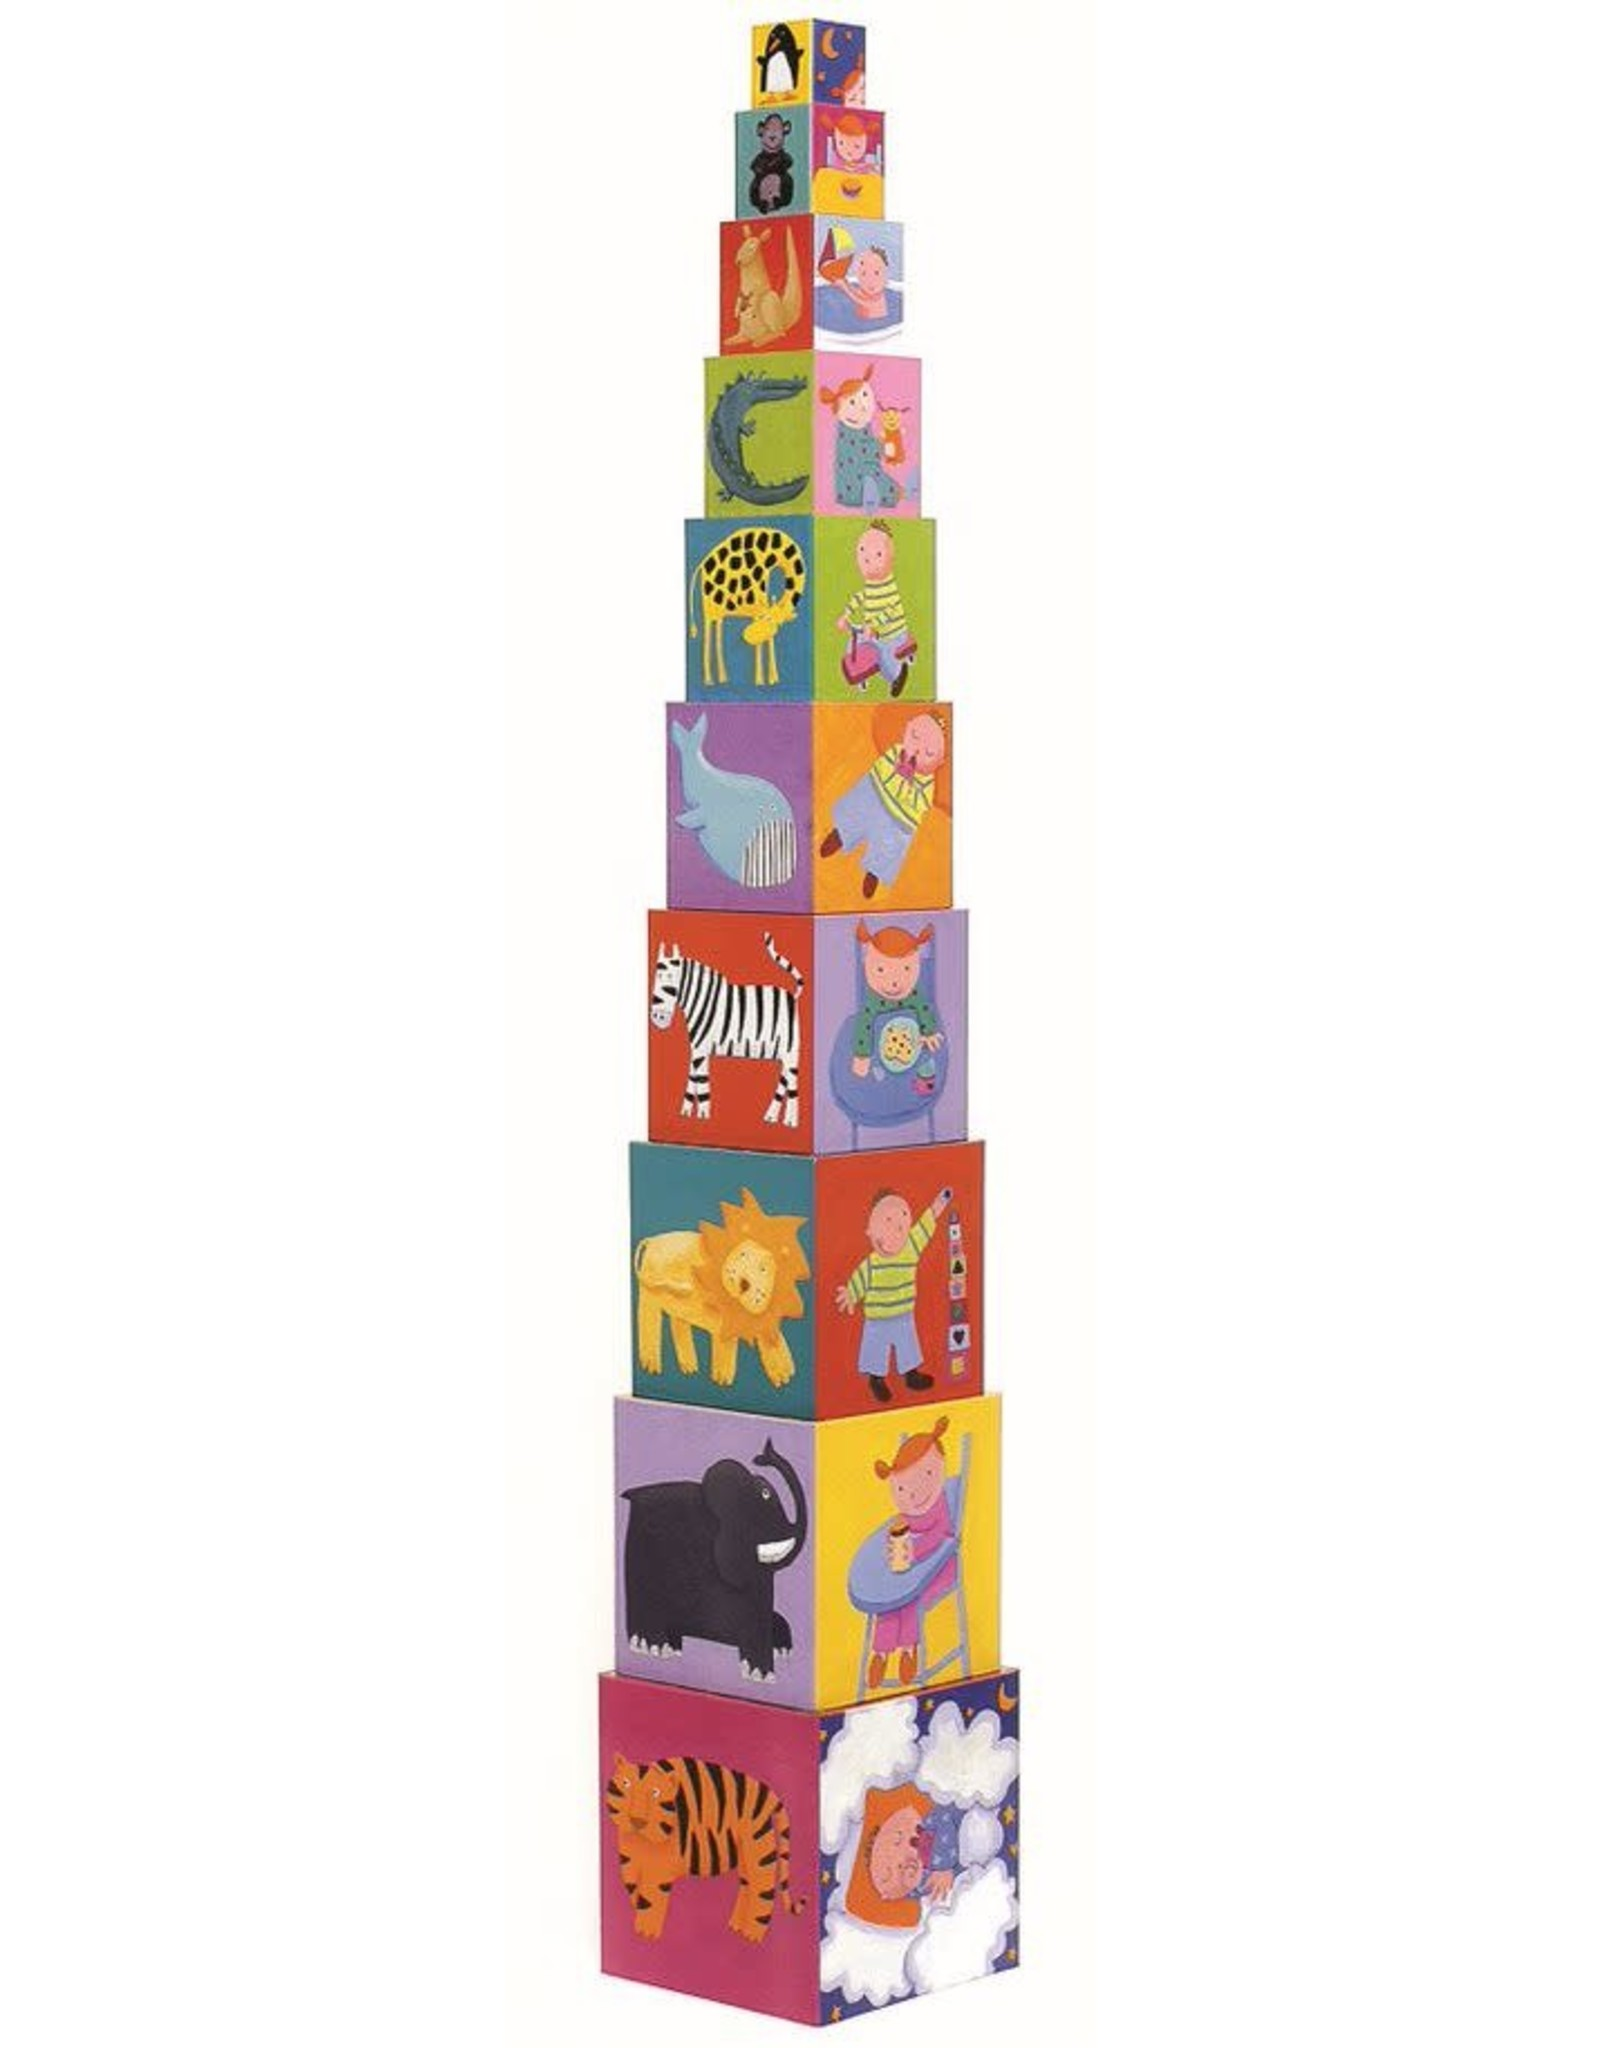 Djeco Stacking Cubes: Funny Blocks